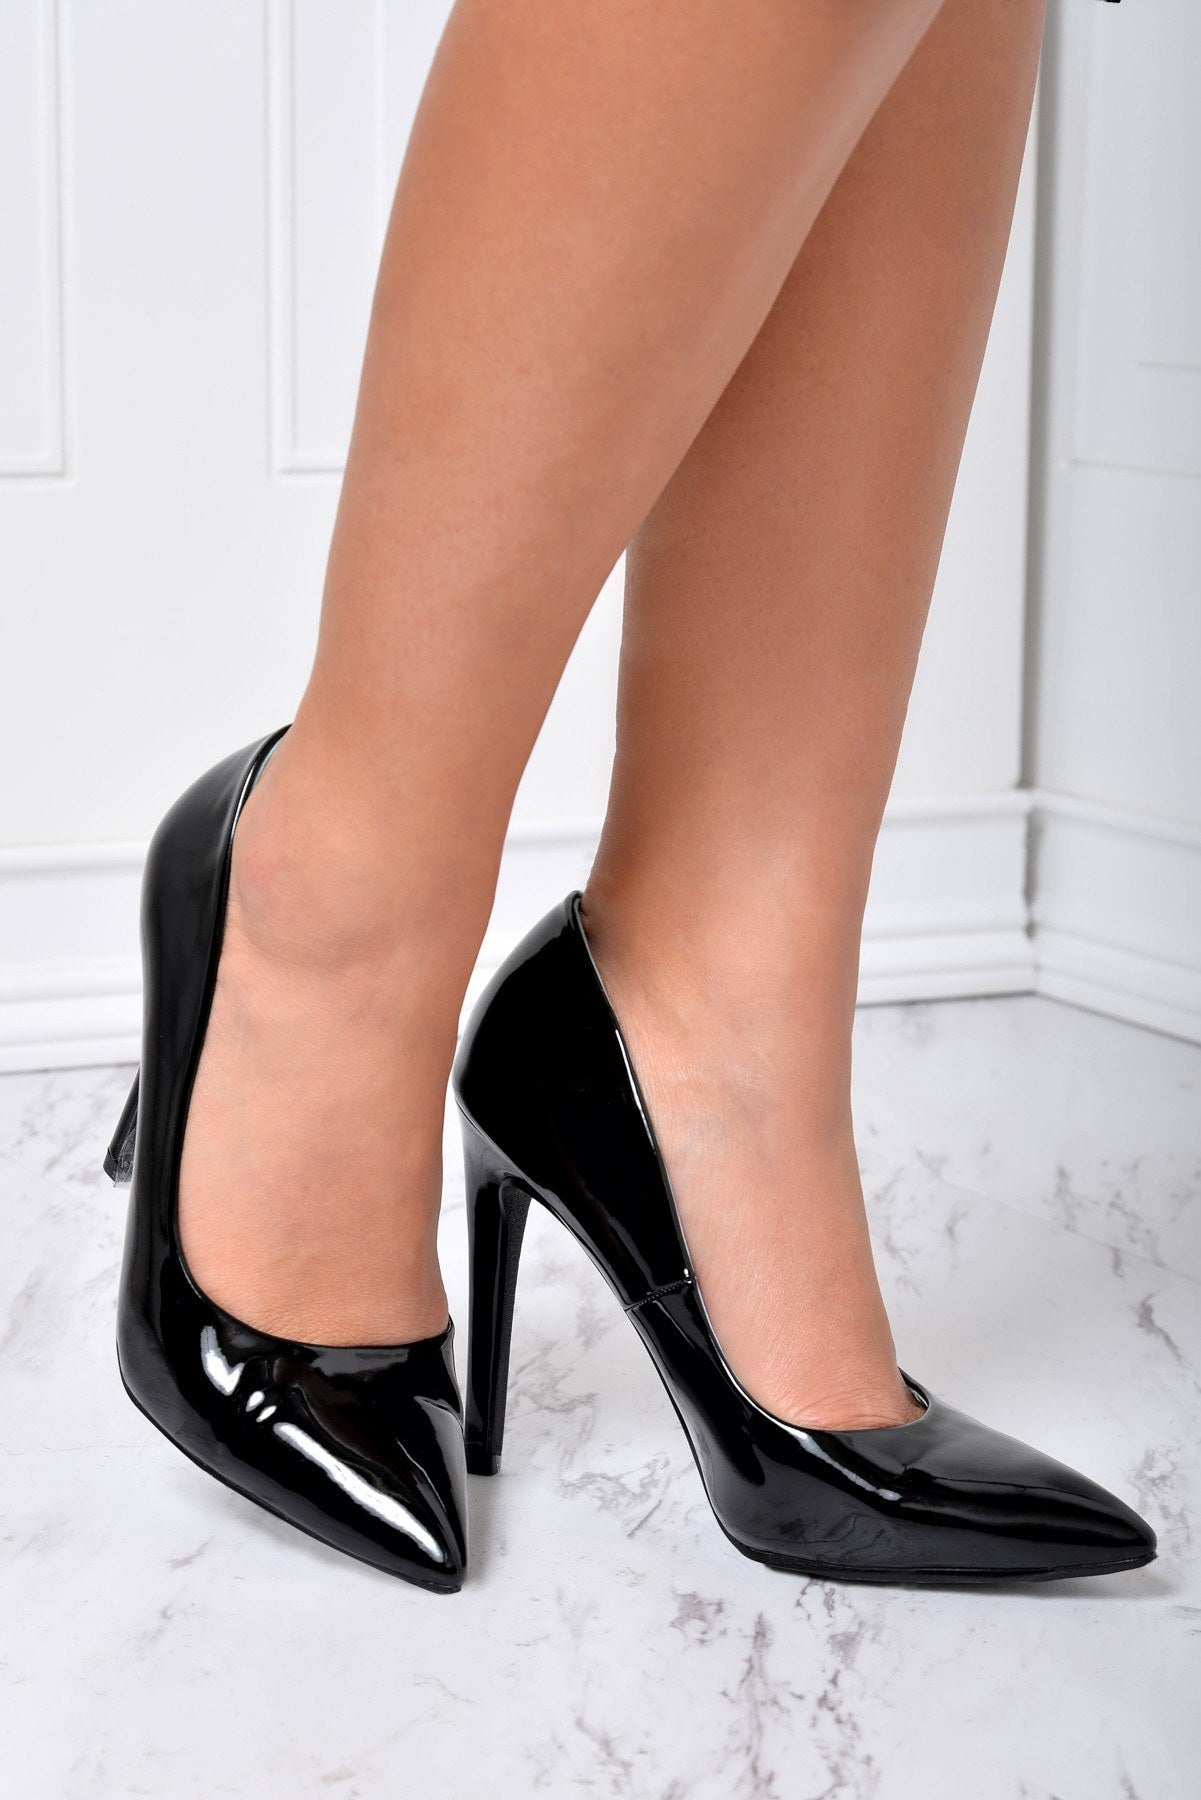 My Basic Black Heels - Fashion Effect Store  - 1